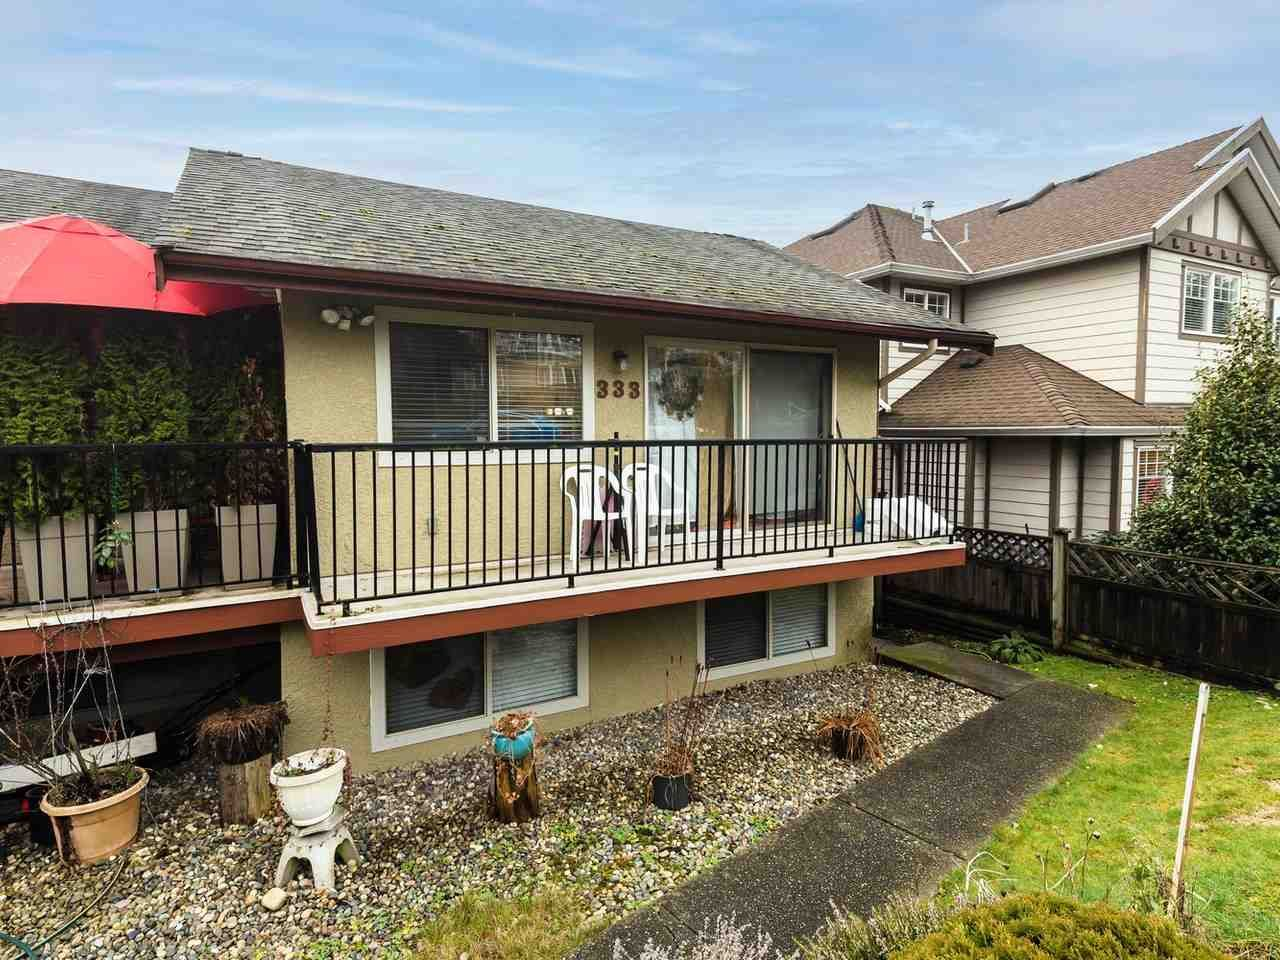 """Main Photo: 333 E 5TH Street in North Vancouver: Lower Lonsdale 1/2 Duplex for sale in """"LOWER LONSDALE"""" : MLS®# R2529429"""